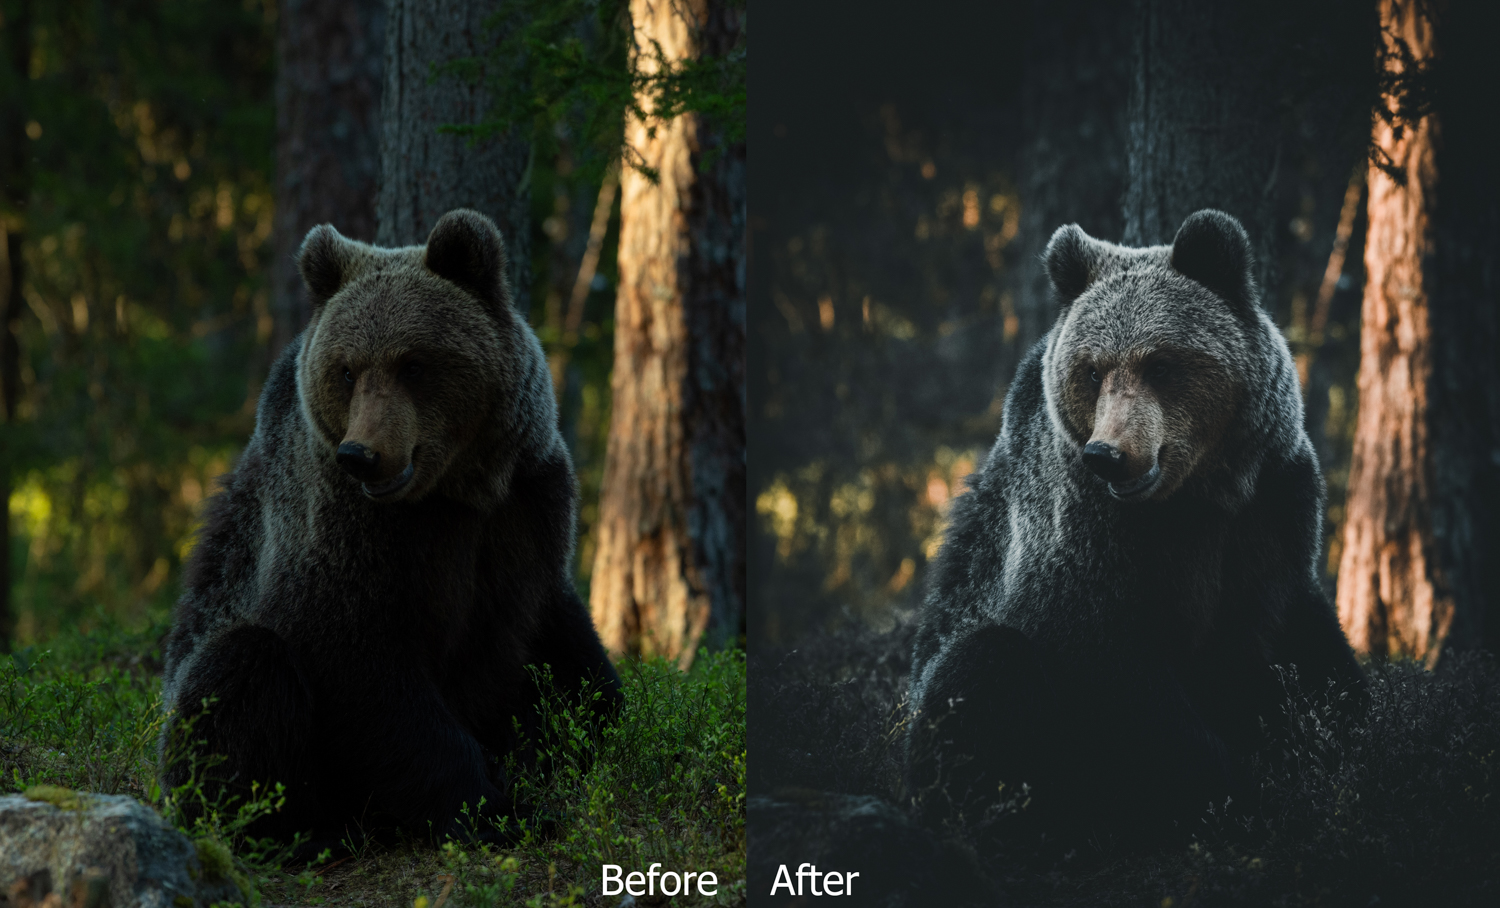 6-Before&After.jpg